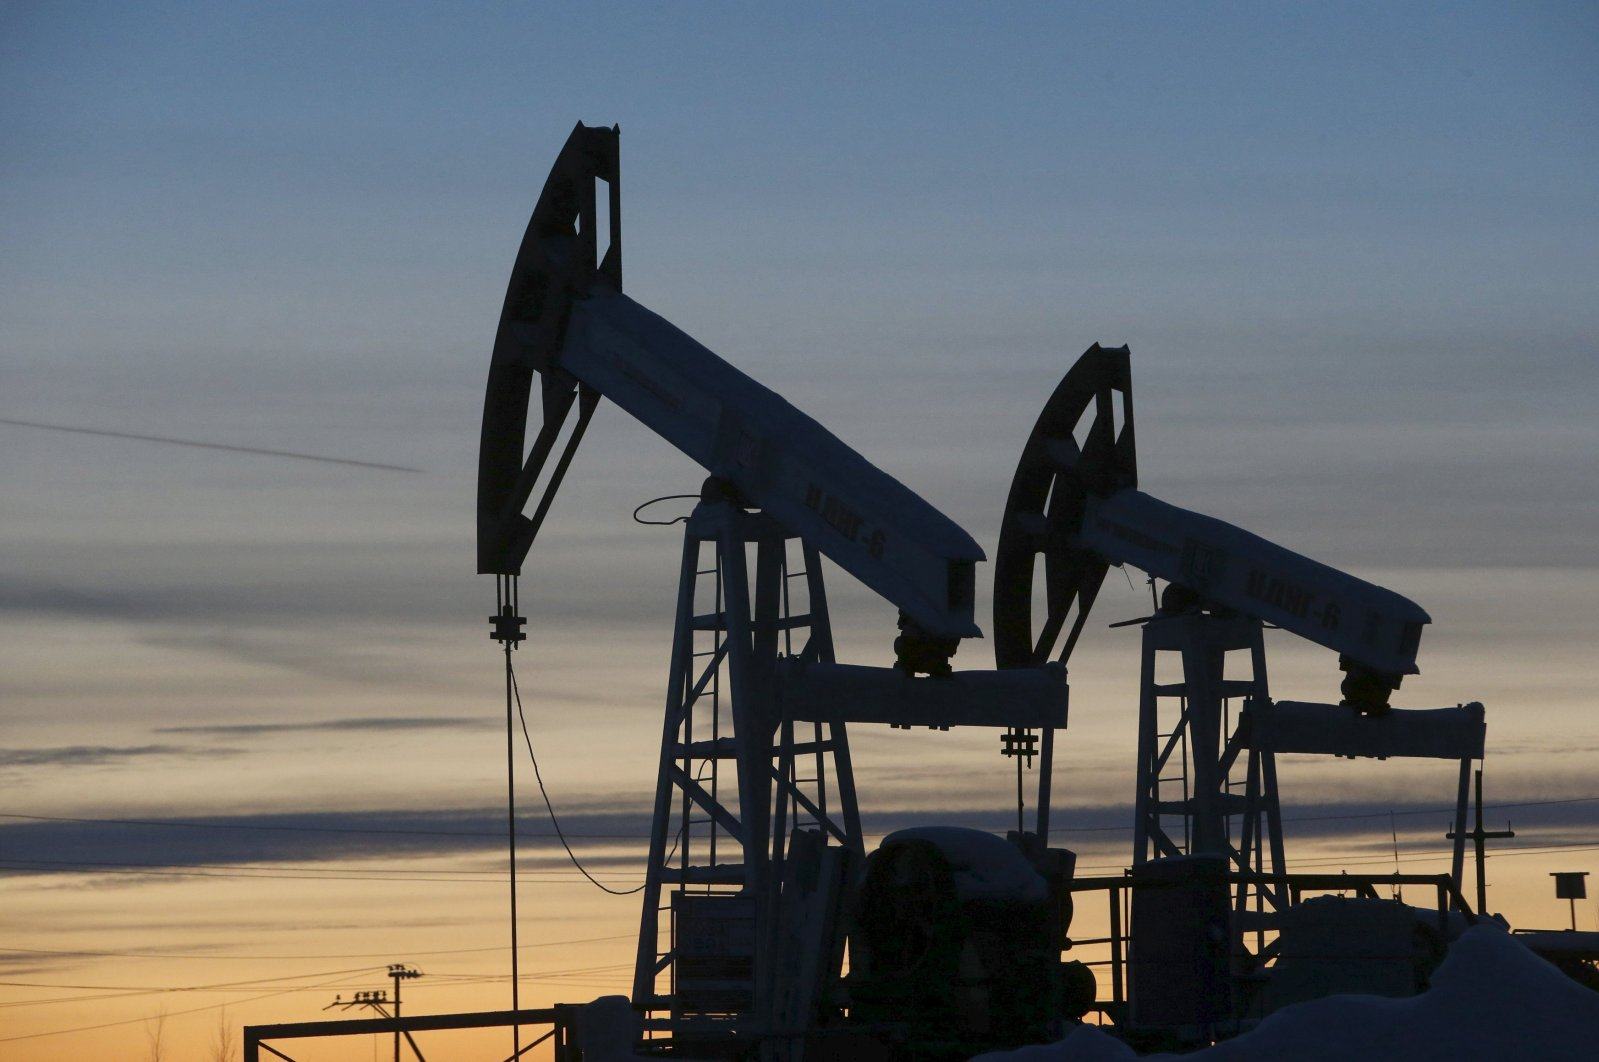 Pump jacks are seen at the Lukoil-owned Imilorskoye oil field, as the sun sets, outside the west Siberian city of Kogalym, Russia, Jan. 25, 2016. (Reuters Photo)